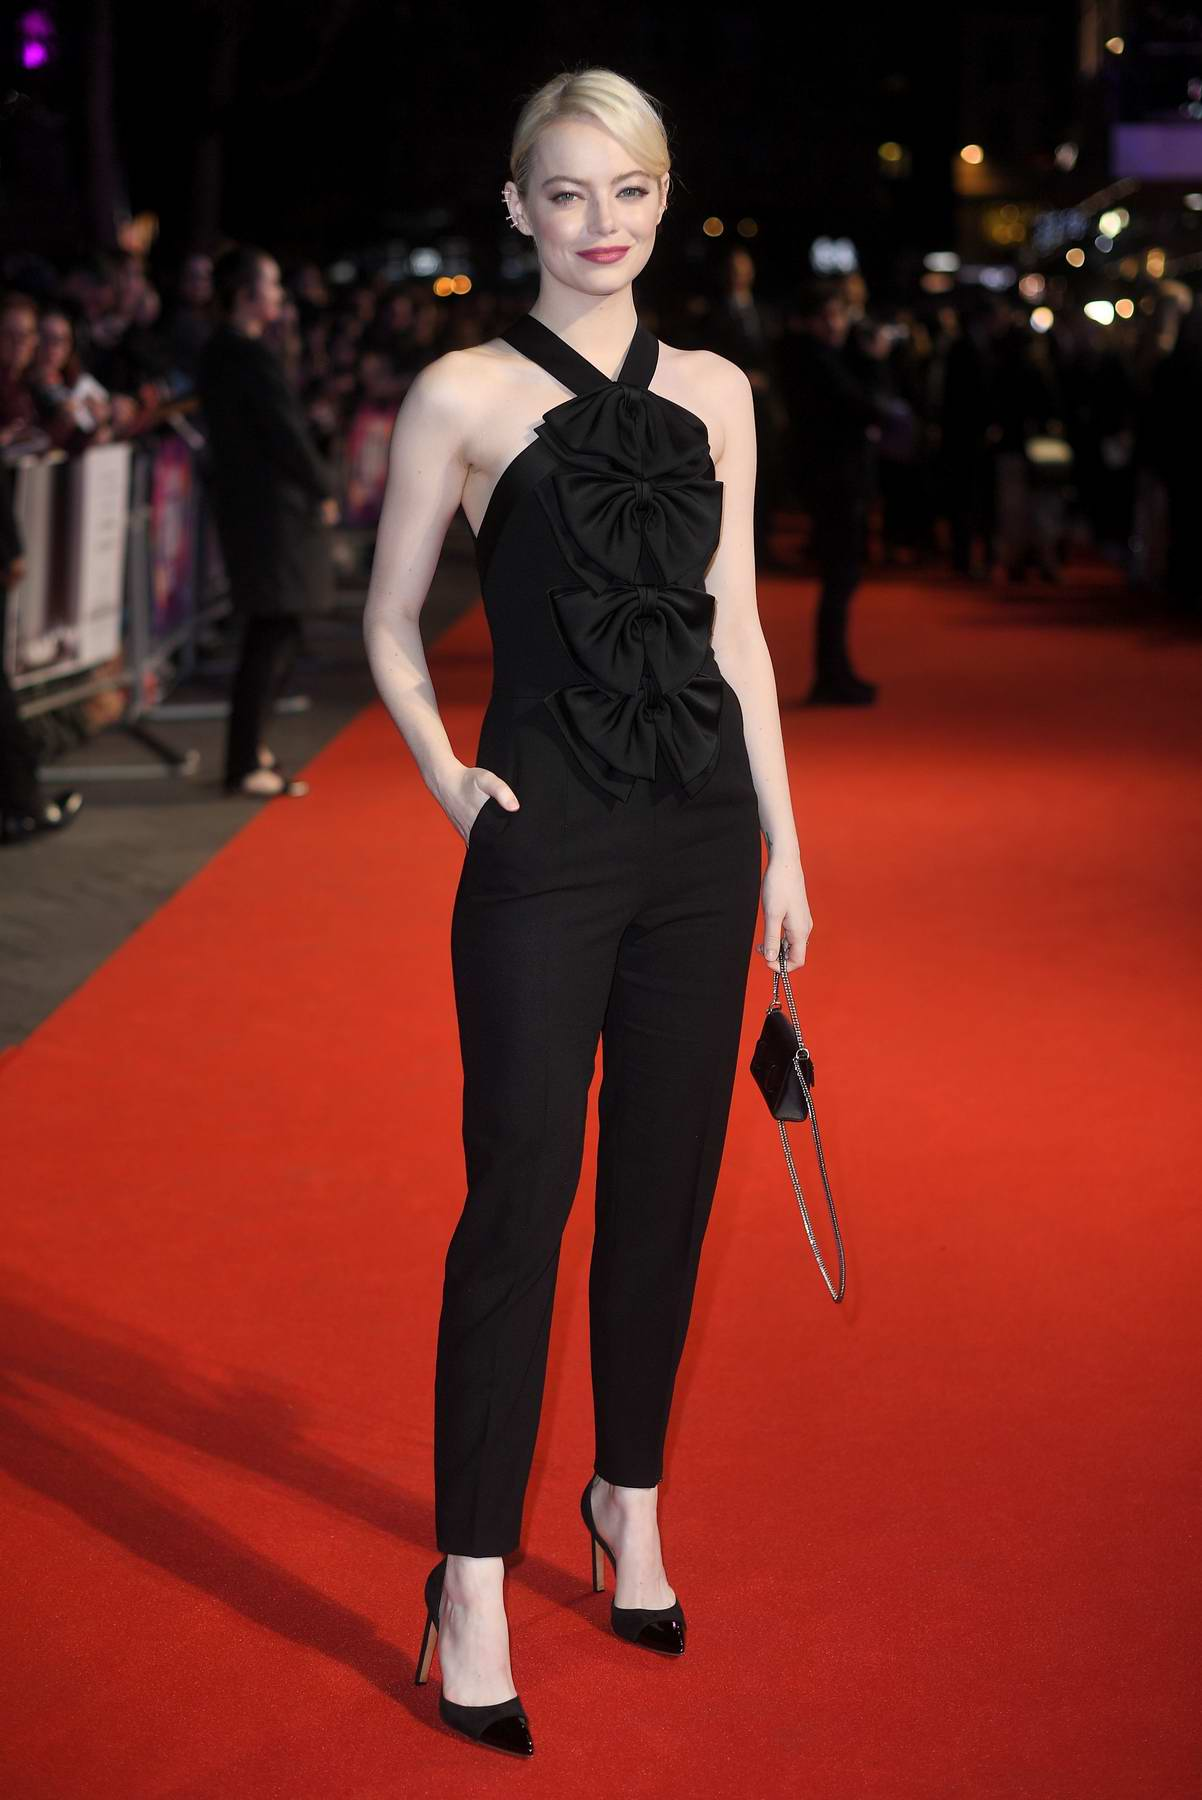 Emma Stone at the premiere of Killing of a Sacred Deer in London